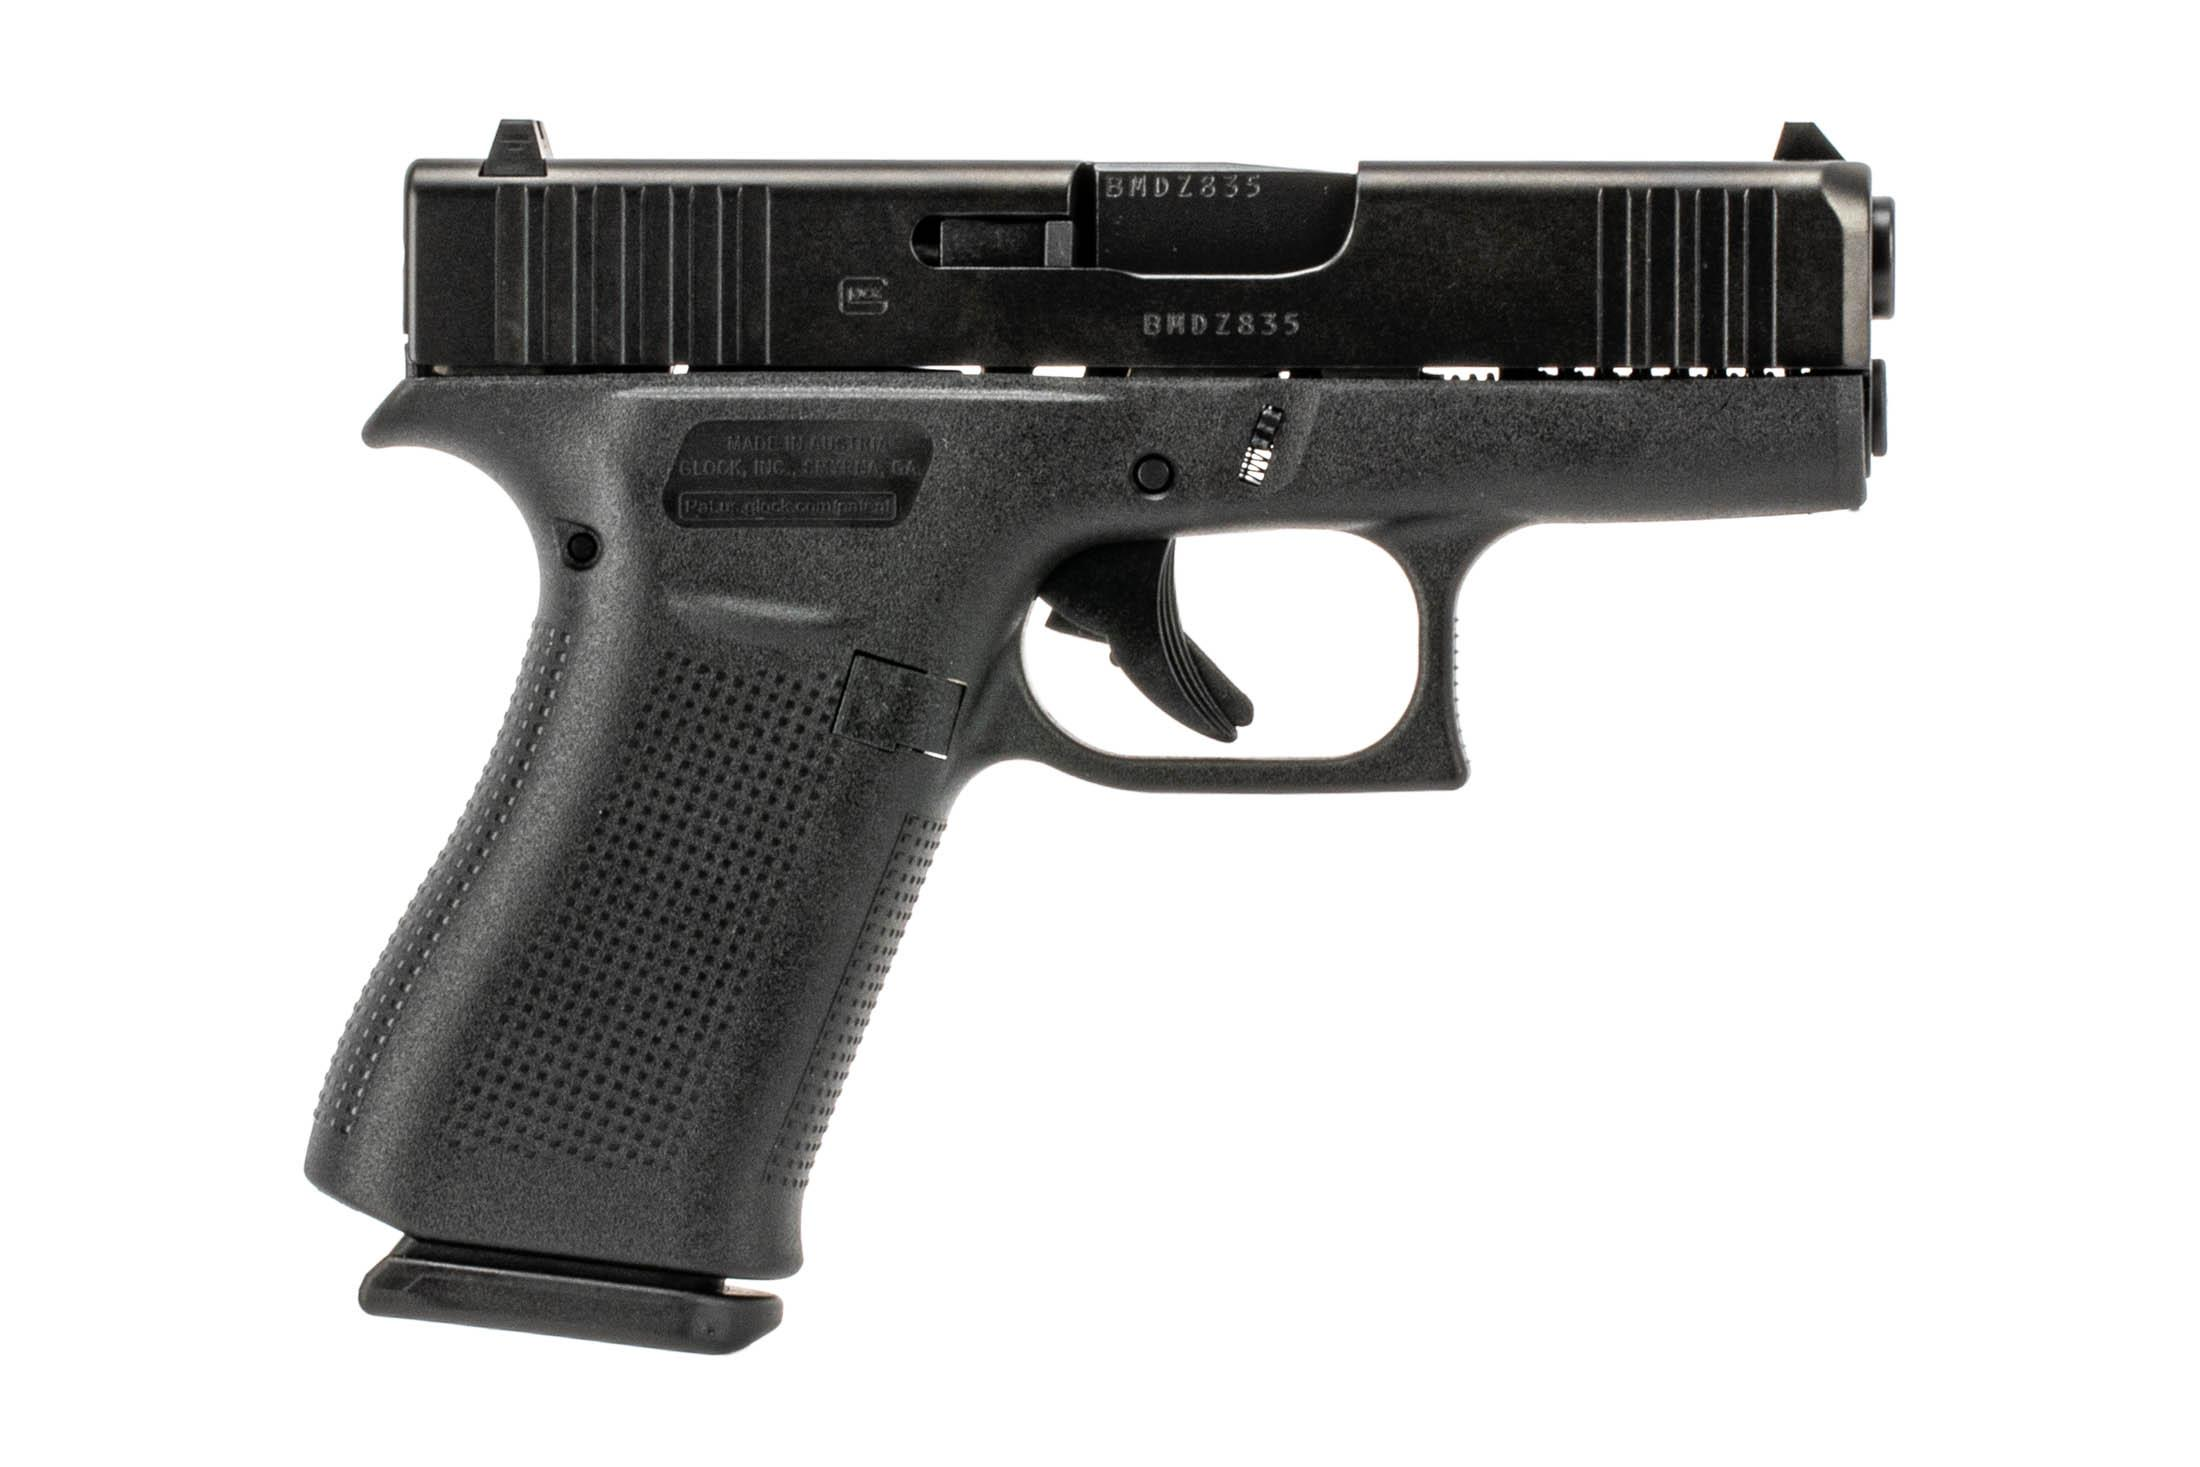 The Glock G43x sub compact 9mm pistol features a slim profile for concealed carry with tough nDLC black finish